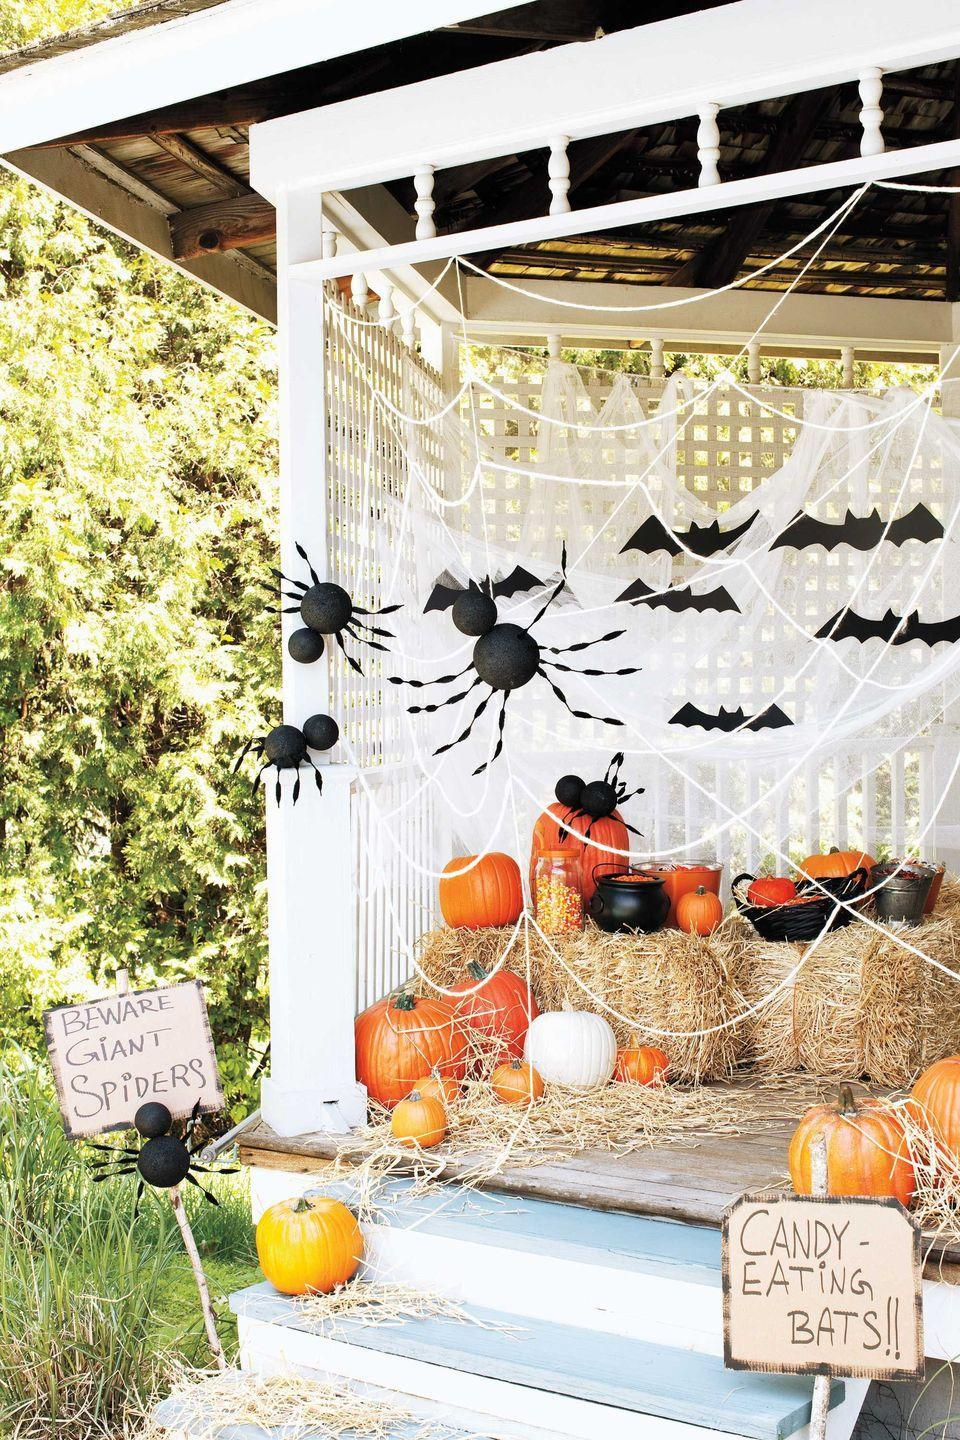 <p>Make your guests carefully maneuver through the web of giant spiders to reach a bowl of prized treats. Made of foam balls and chenille stems, these creepy creatures try to catch candy thieves in their web!</p>